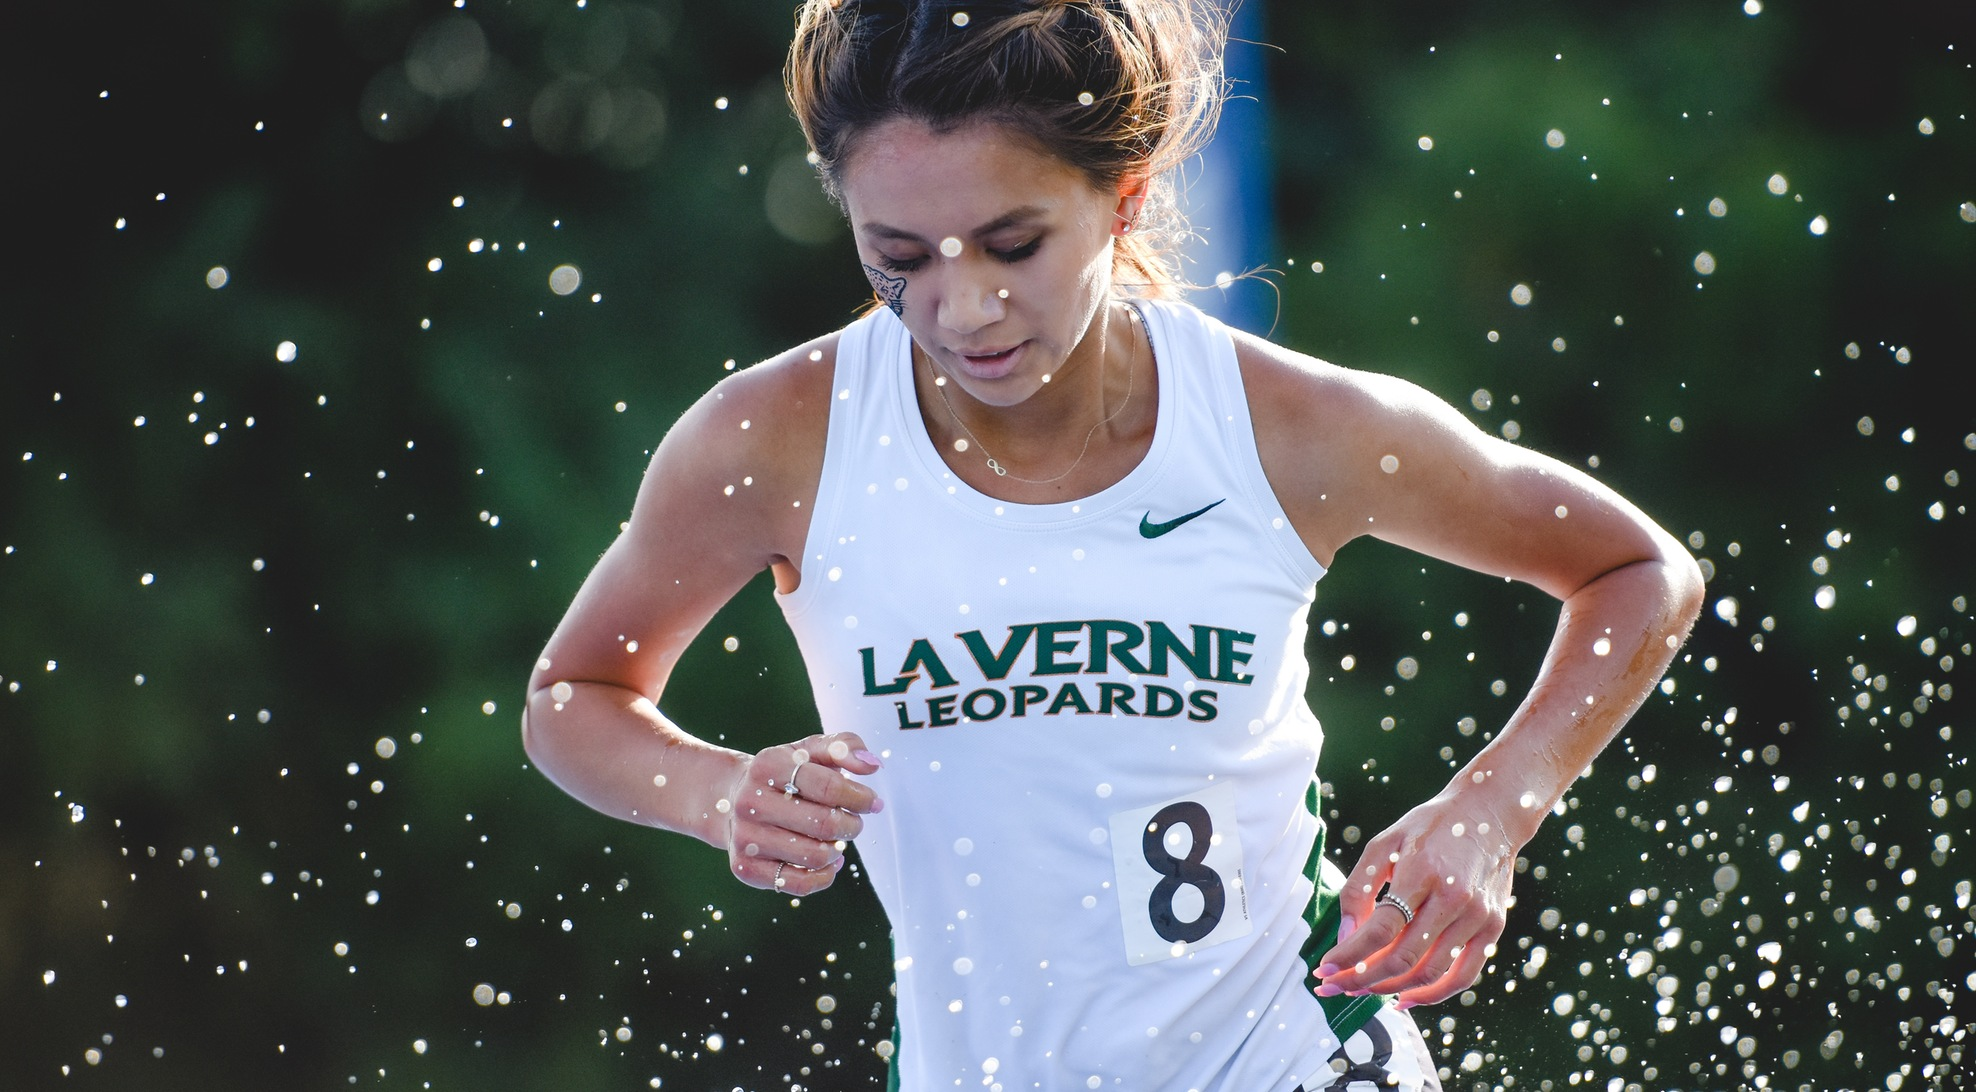 Cerrillos repeats as SCIAC steeplechase champ